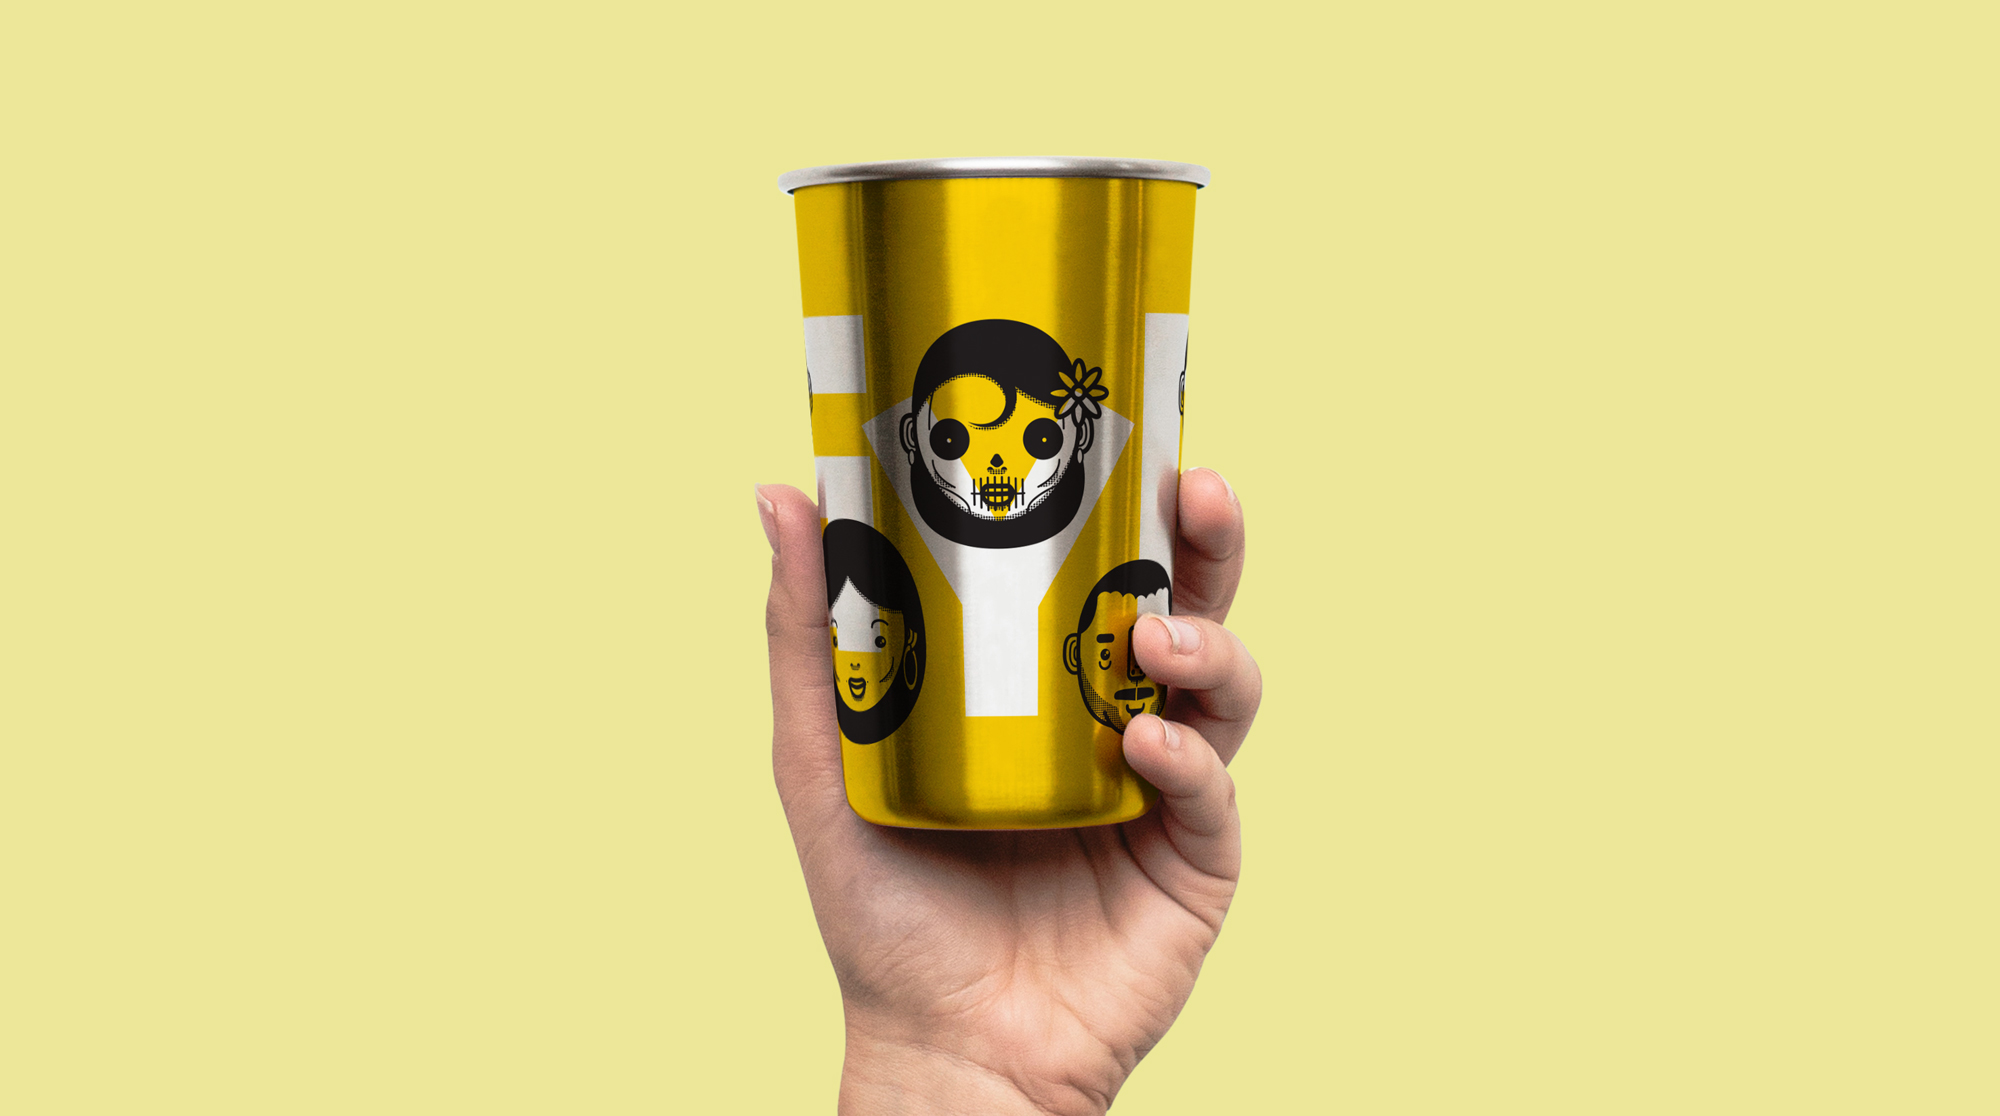 Hand-Holding-Metal-Cup-GYG-cropped.jpg